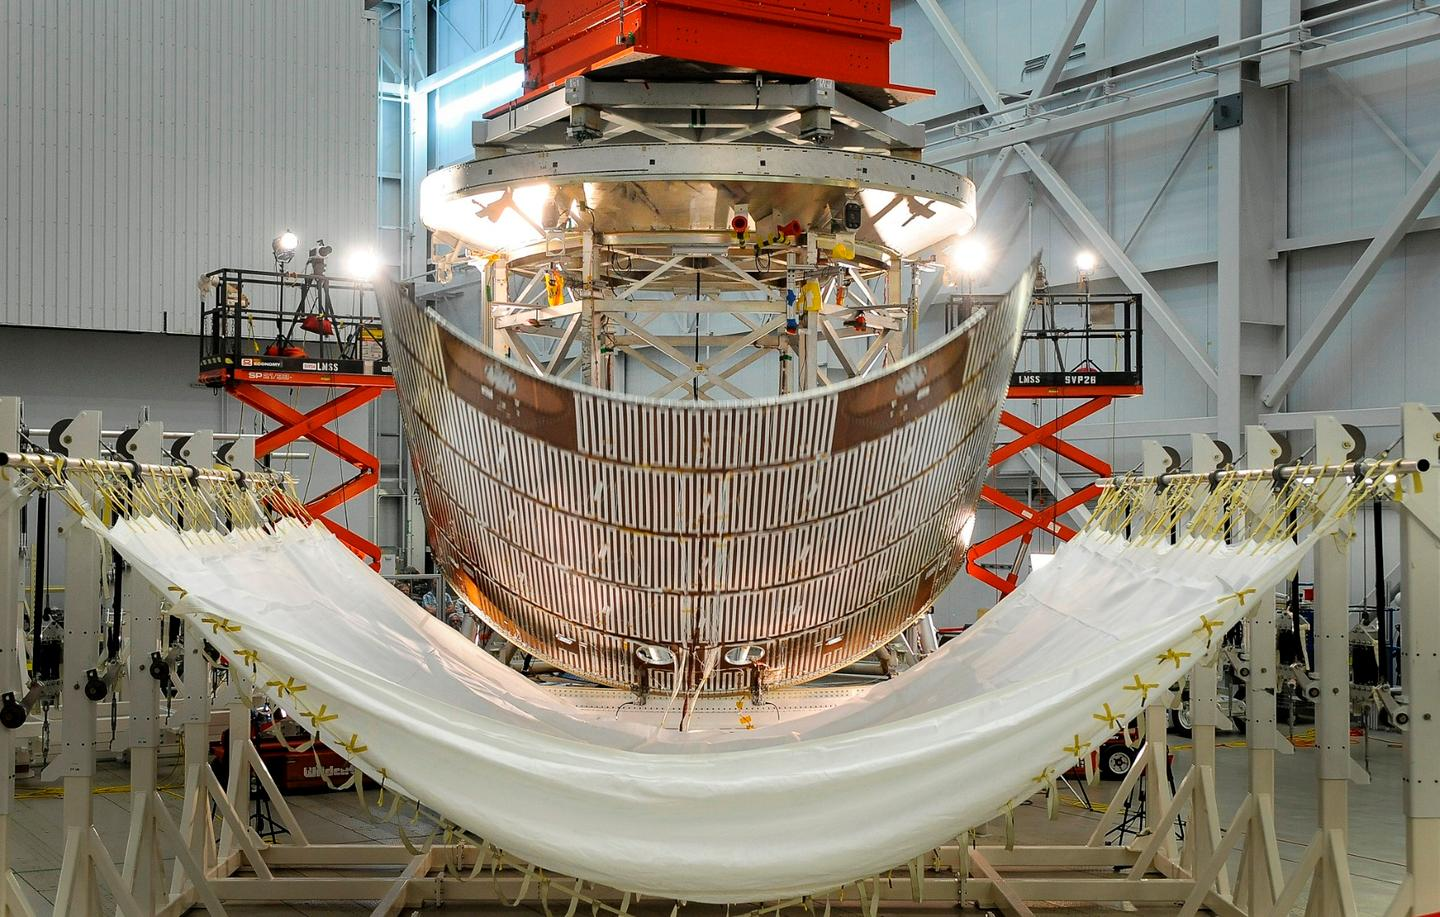 A protective panel for Orion's service module is jettisoned during testing at Lockheed Martin's Sunnyvale, California facility